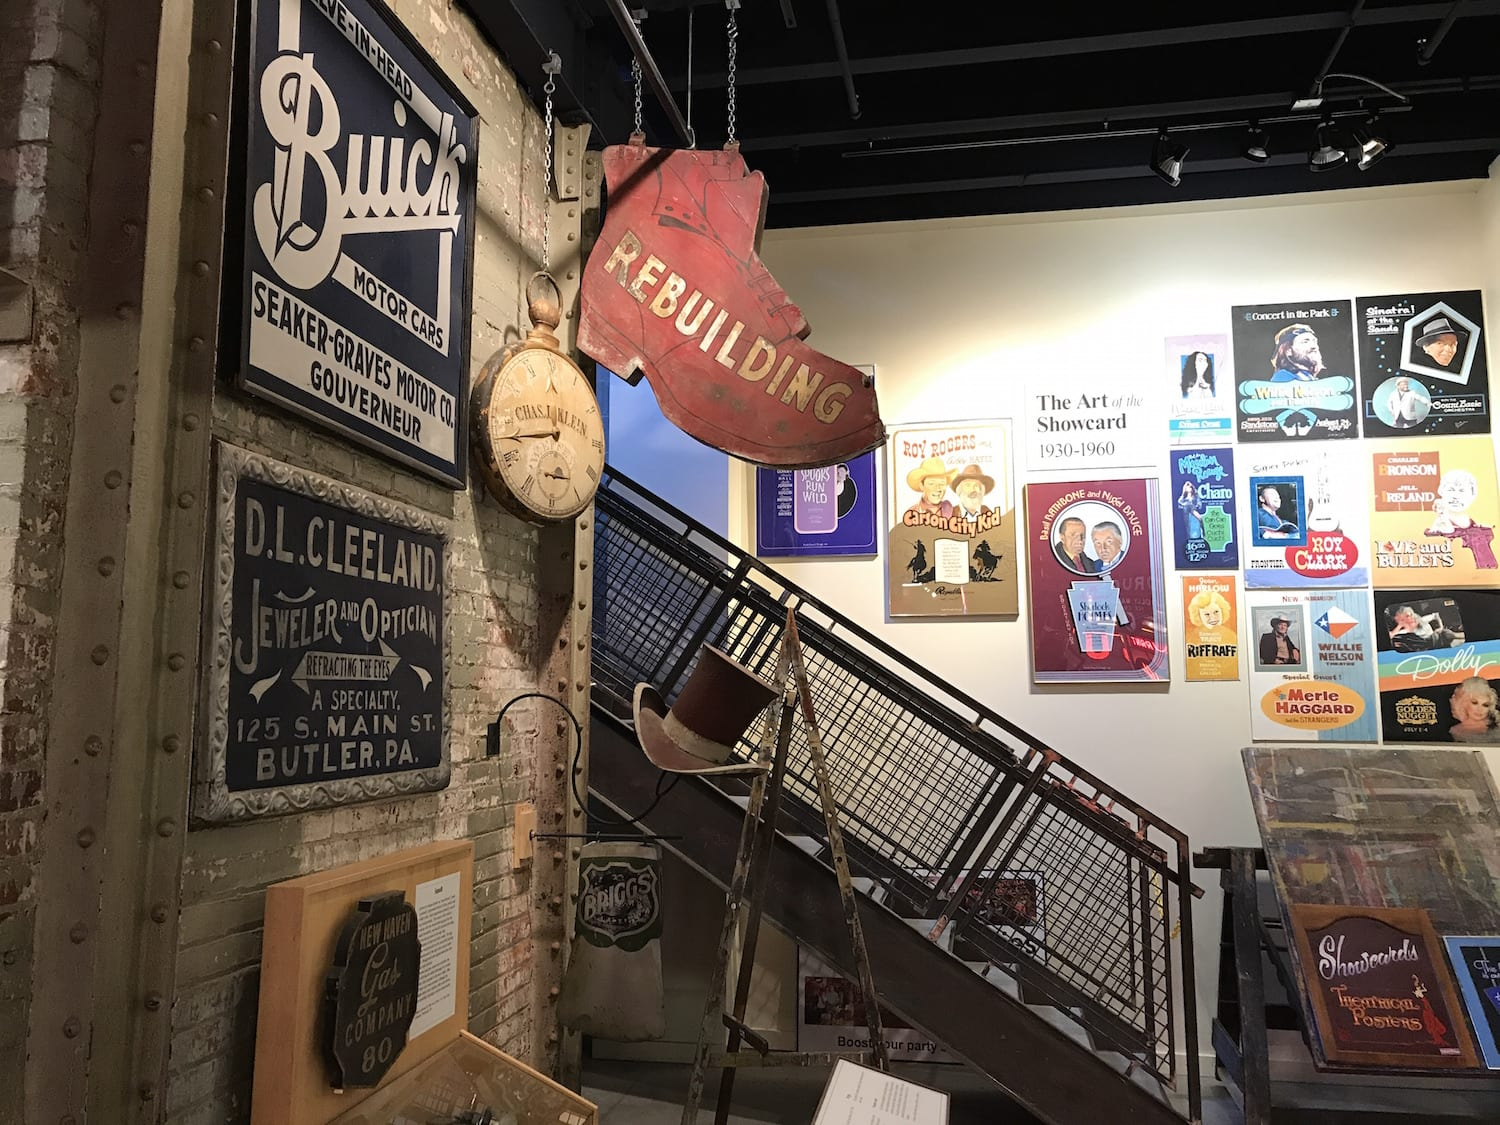 American Sign Museum, Cincinnati Ohio